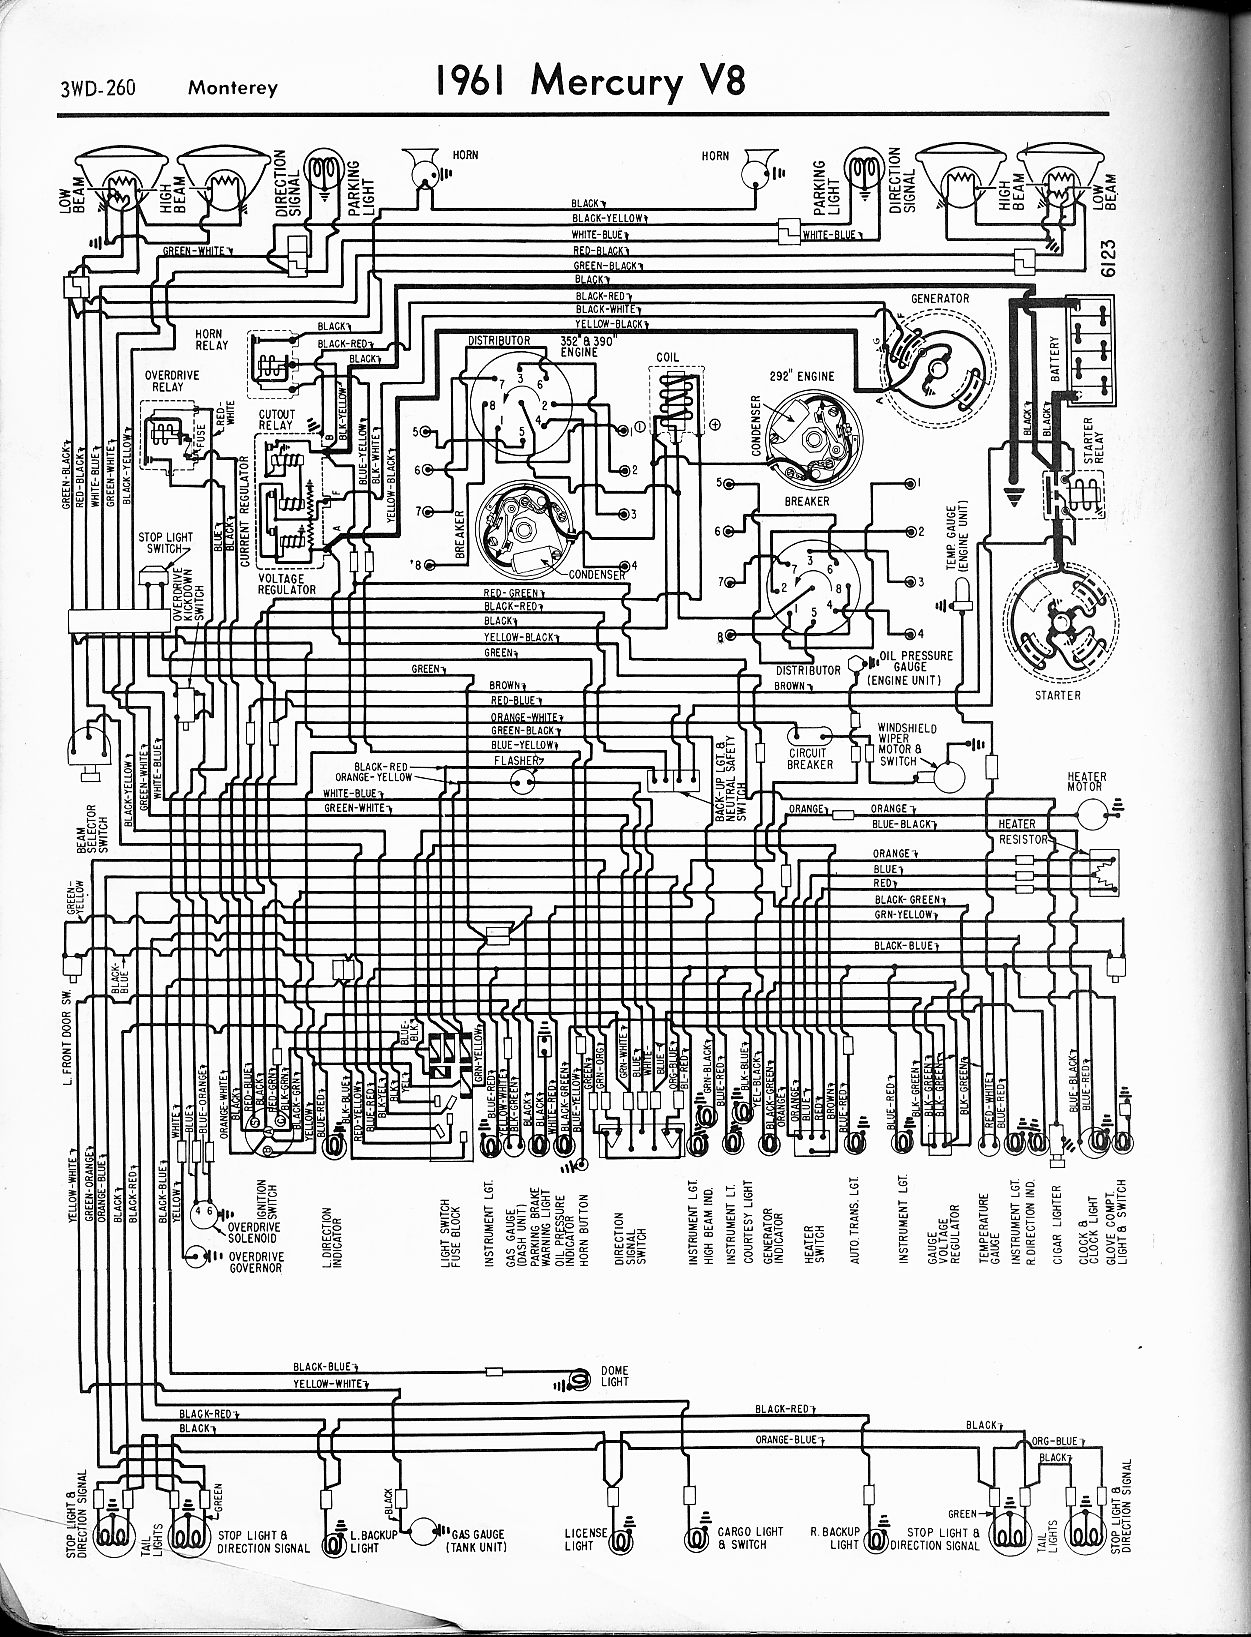 1964 mercury comet wiring diagram schematic wiring diagram